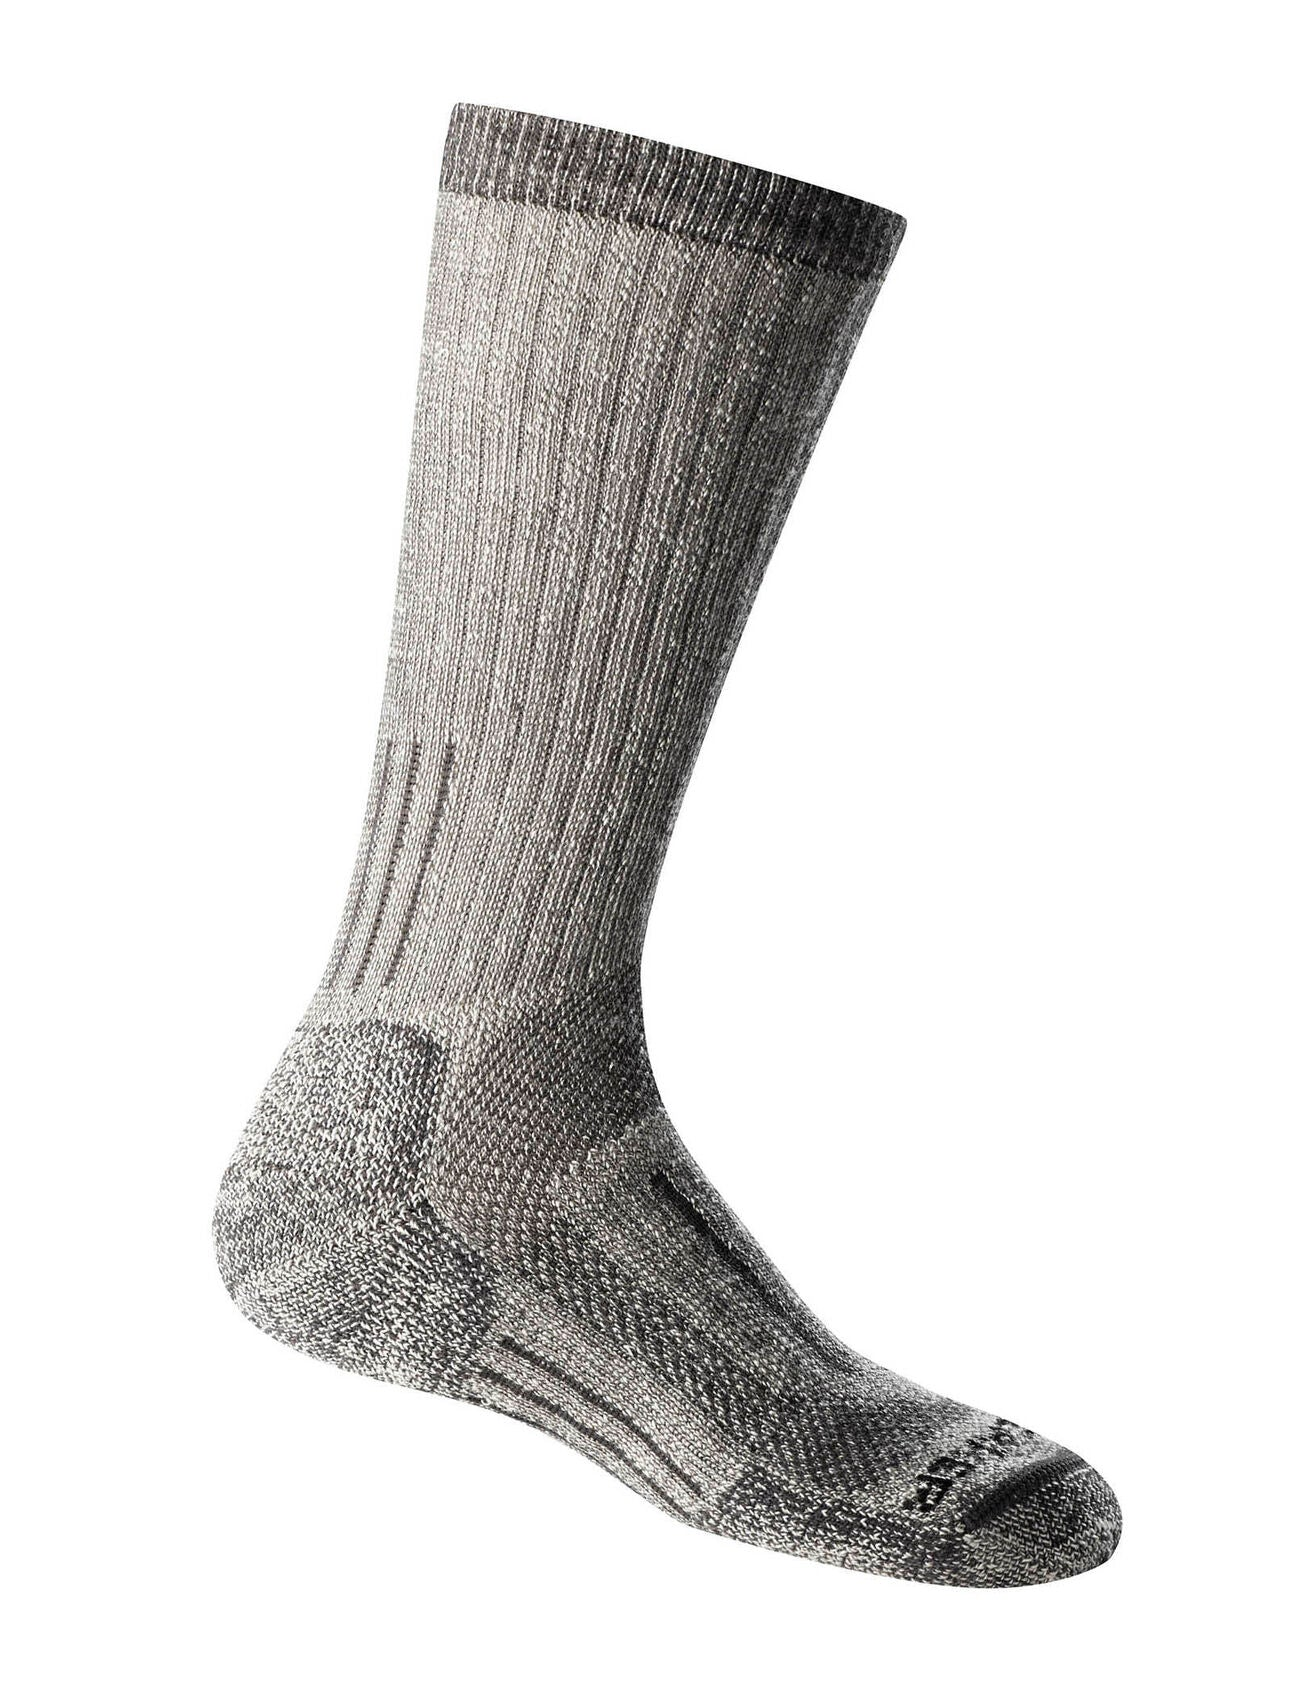 Icebreaker Mountaineer Mid Calf Socks (Women's) - Find Your Feet Australia Hobart Launceston Tasmania